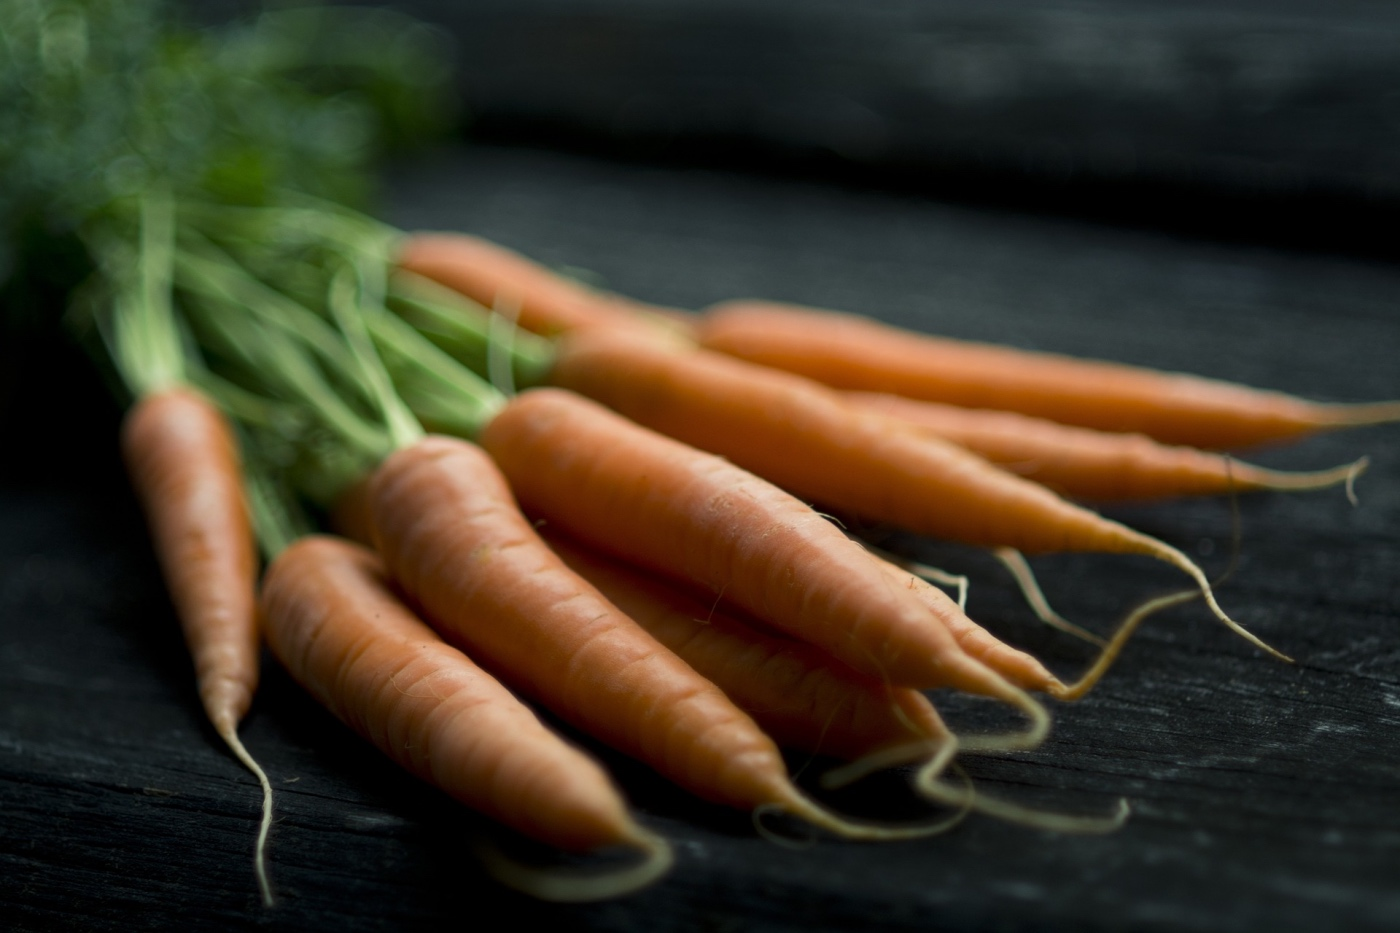 carrots to make roasted carrots and beets pop shop america